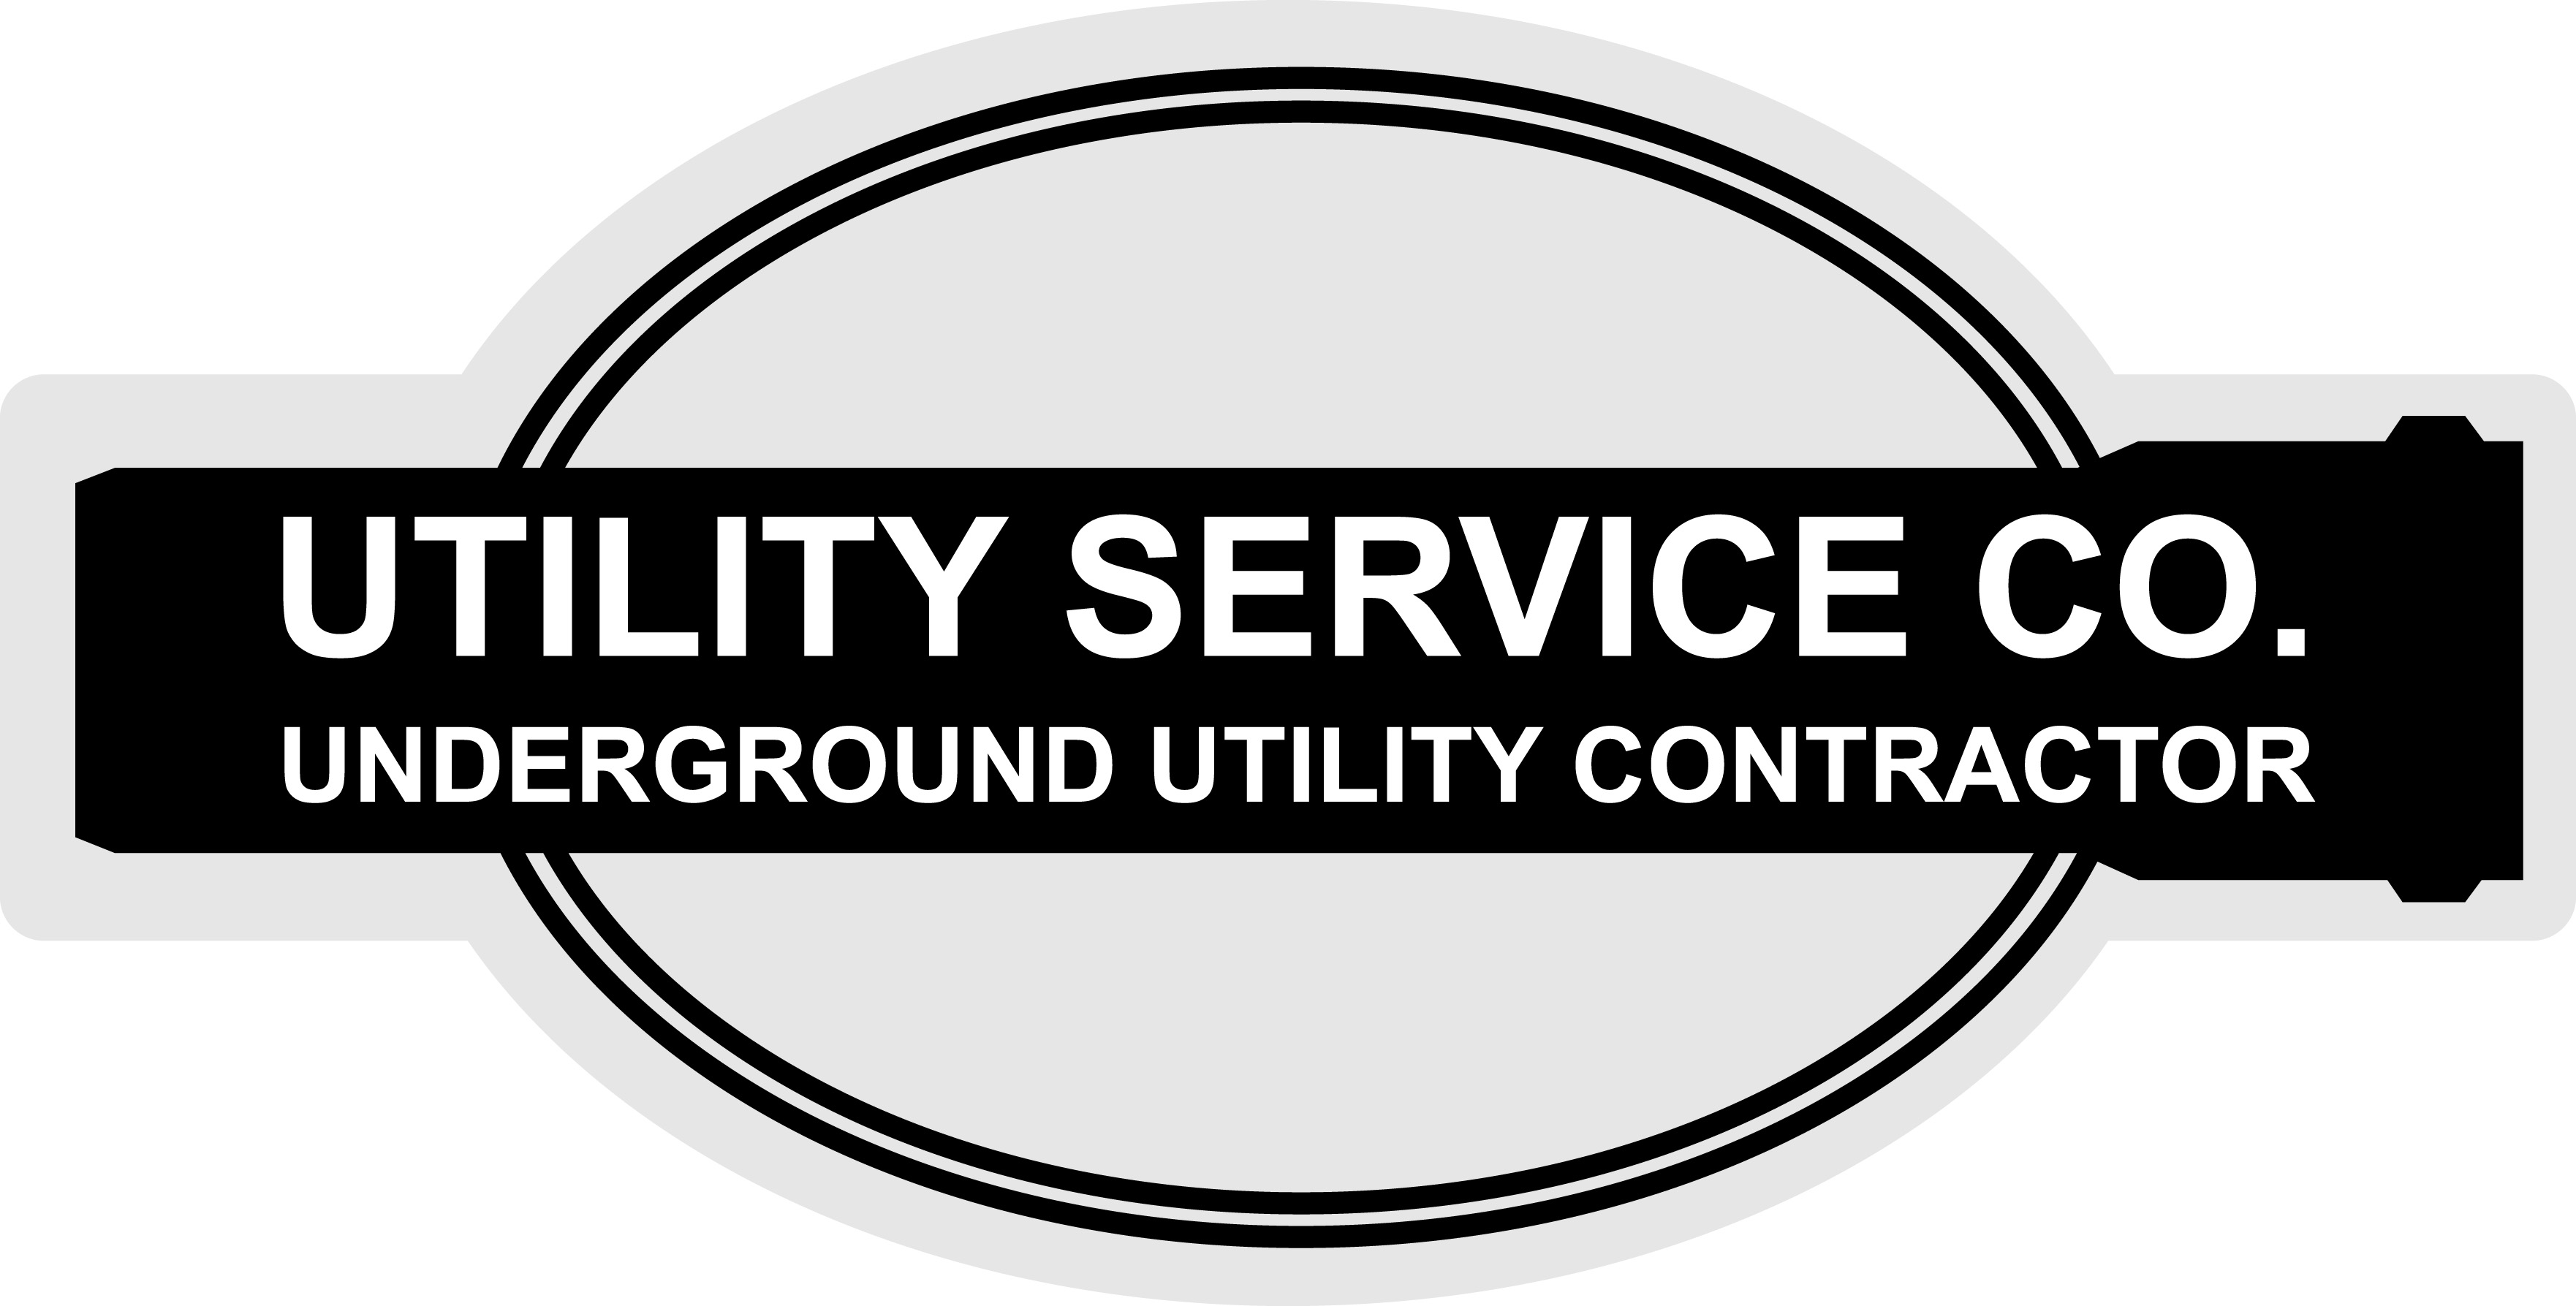 Utility Services Company